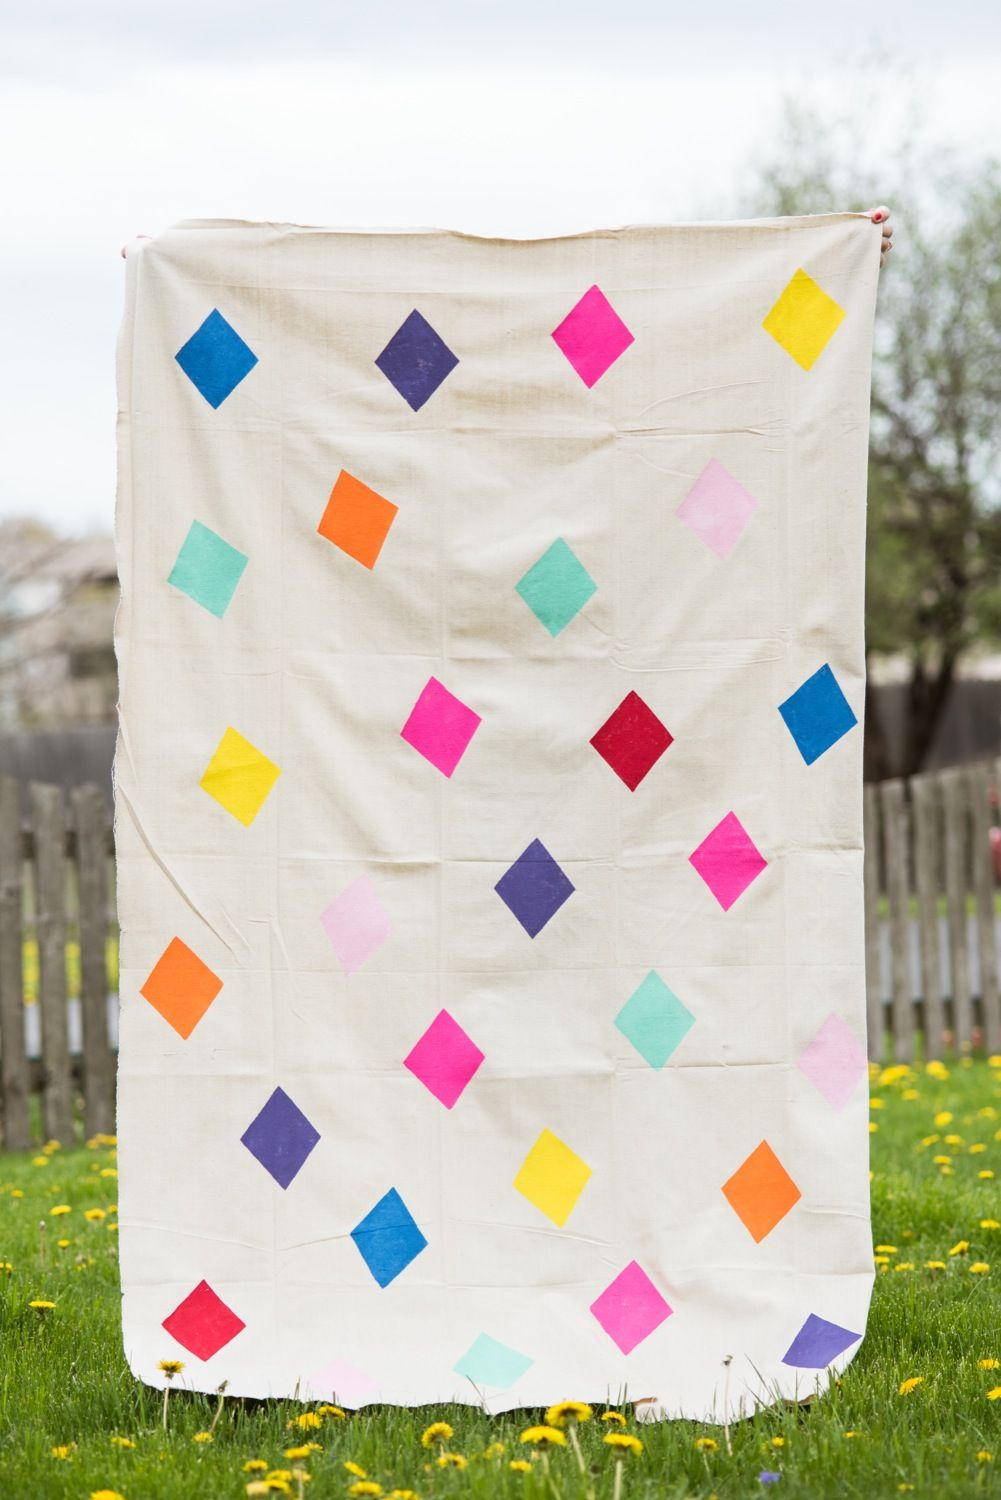 DIY Geometric Picnic Blanket | Picnics, Blanket and DIY tutorial